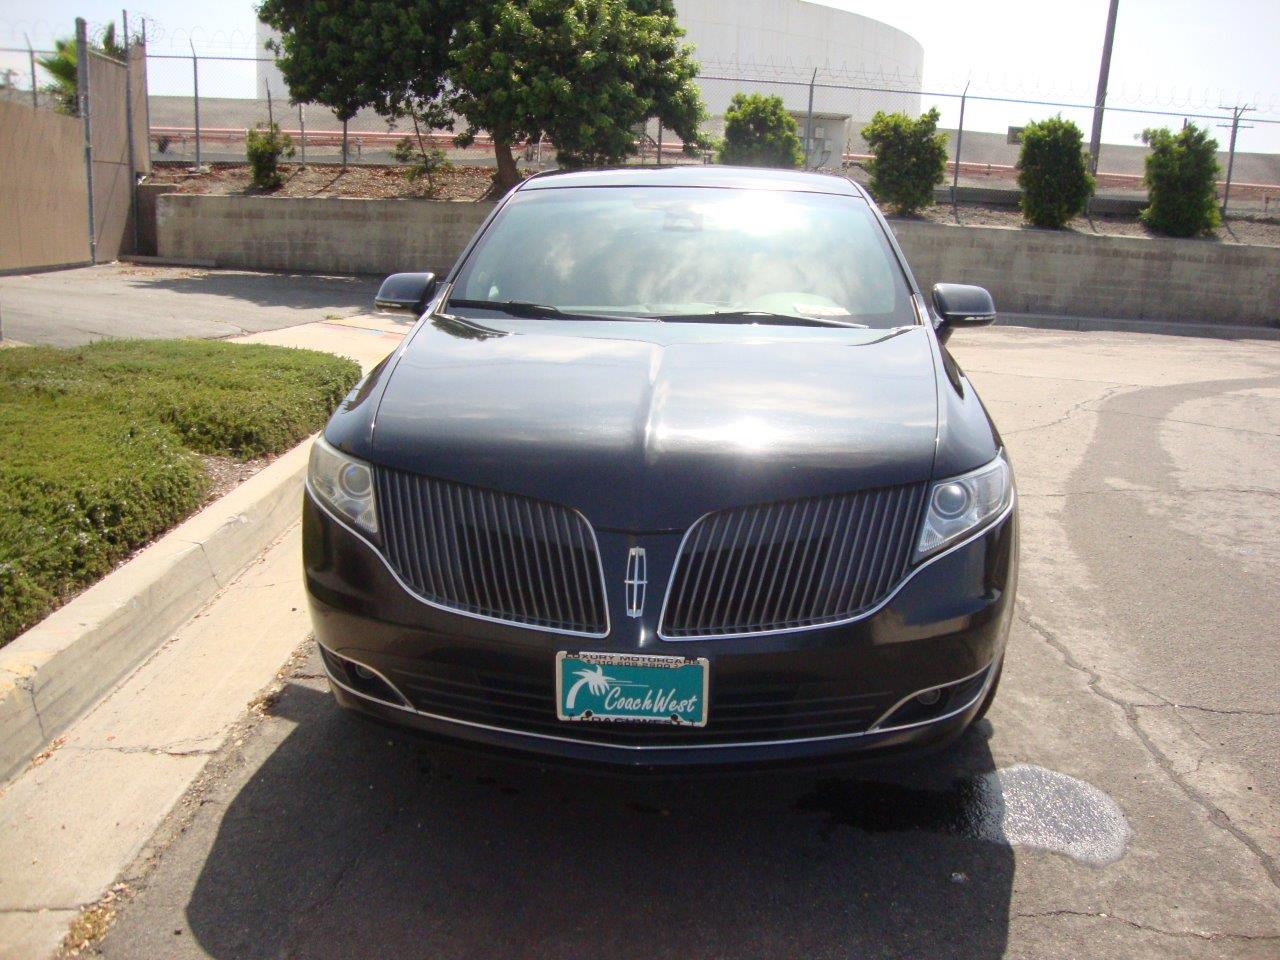 2013 Lincoln MKT Livery Town Car - Coach West